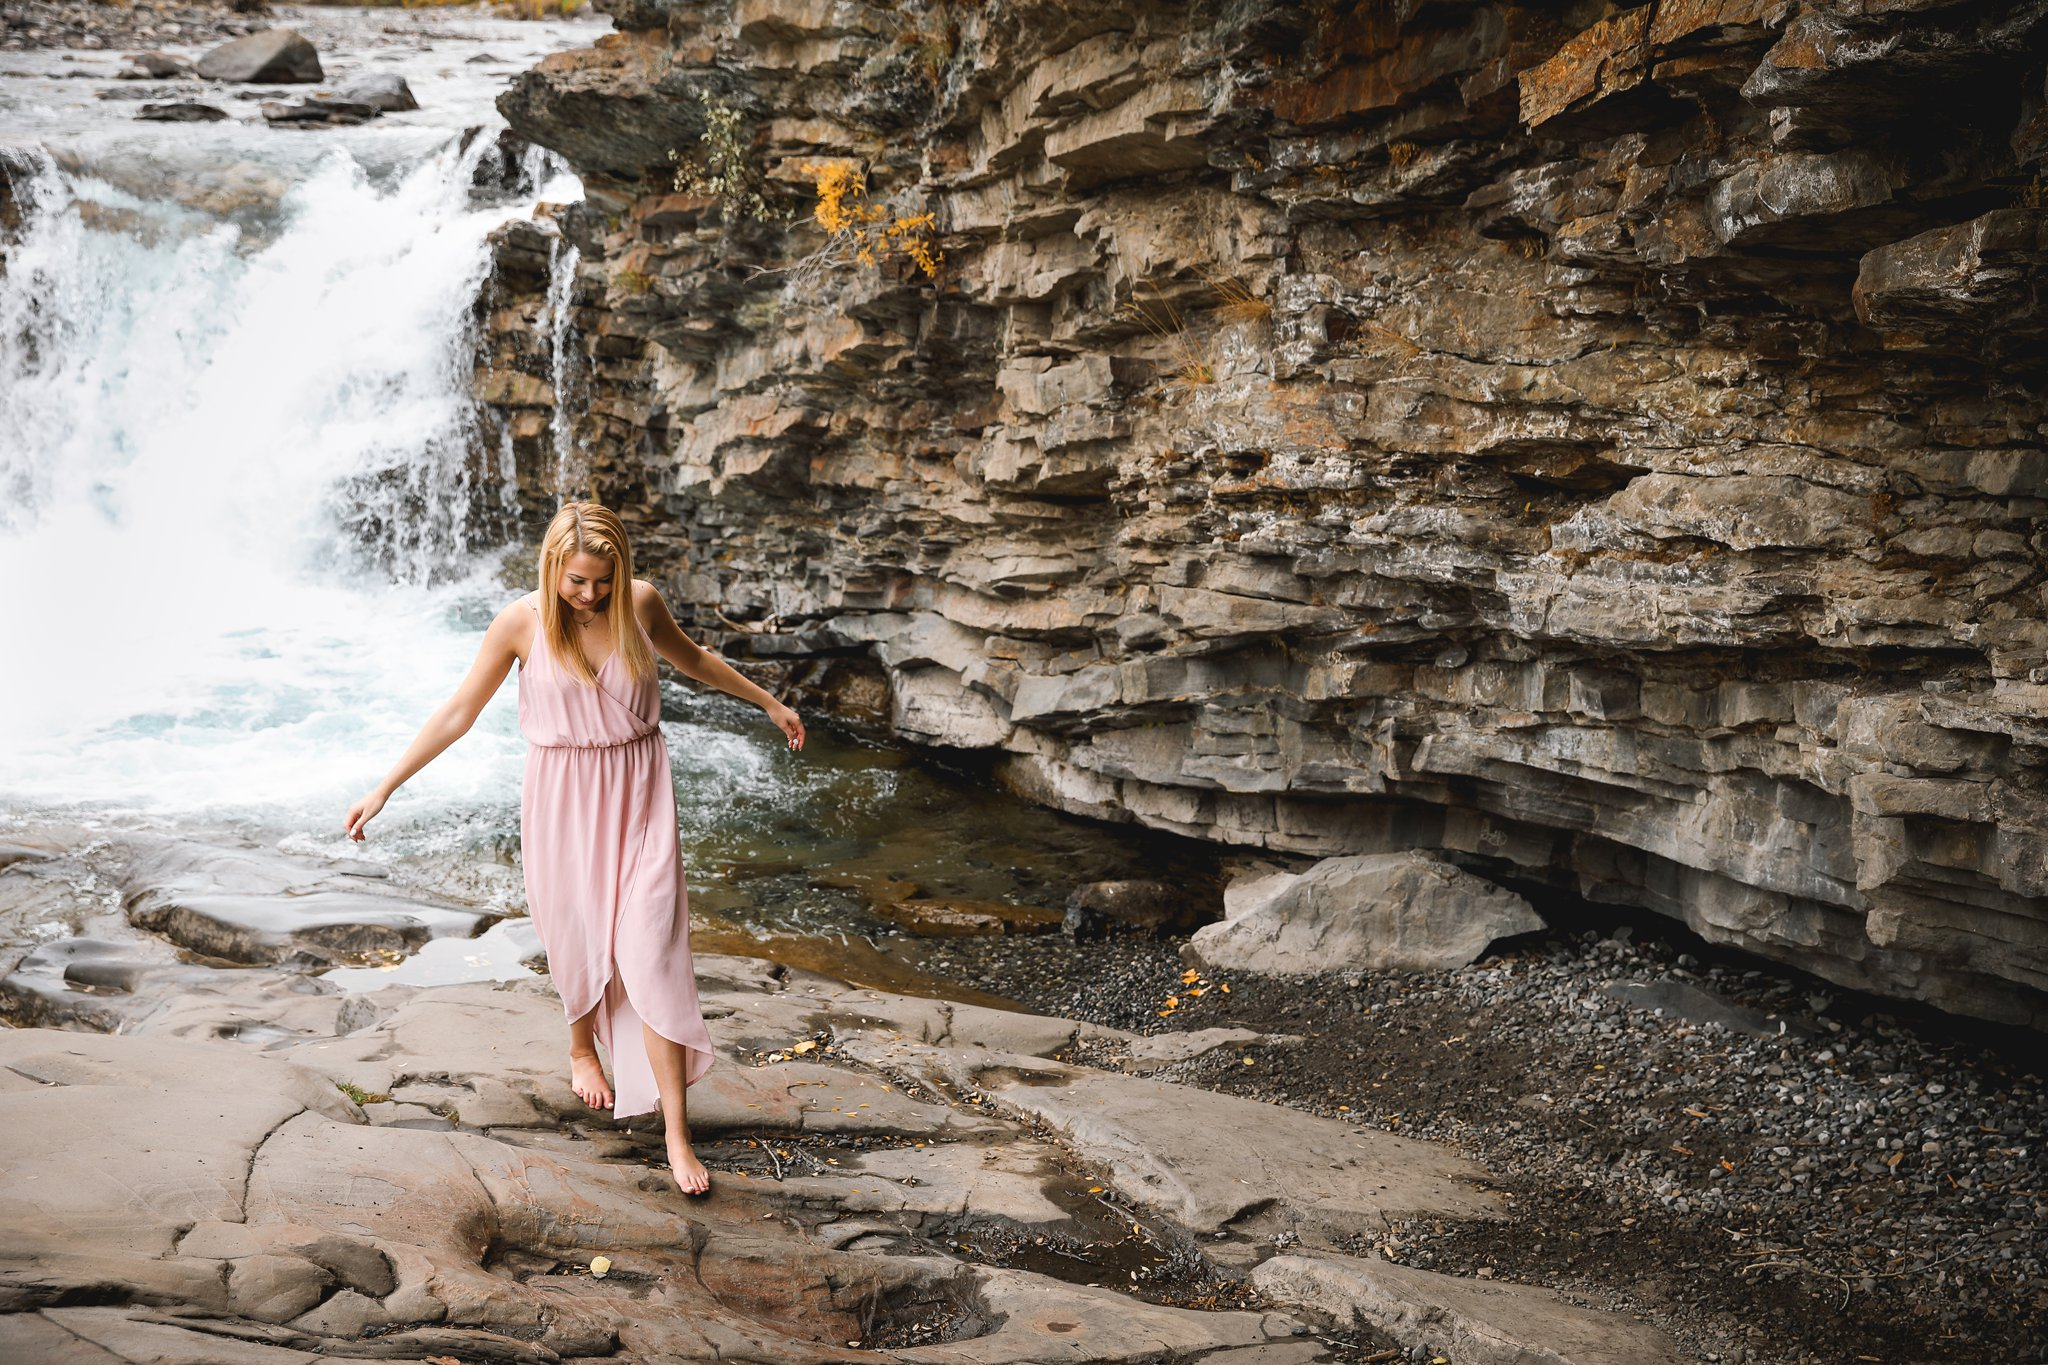 AshleyDaphnePhotography Calgary Photographer Wedding Family Senior Portraits Rocky Mountains Sheep River Falls Autumn Fall_0031.jpg